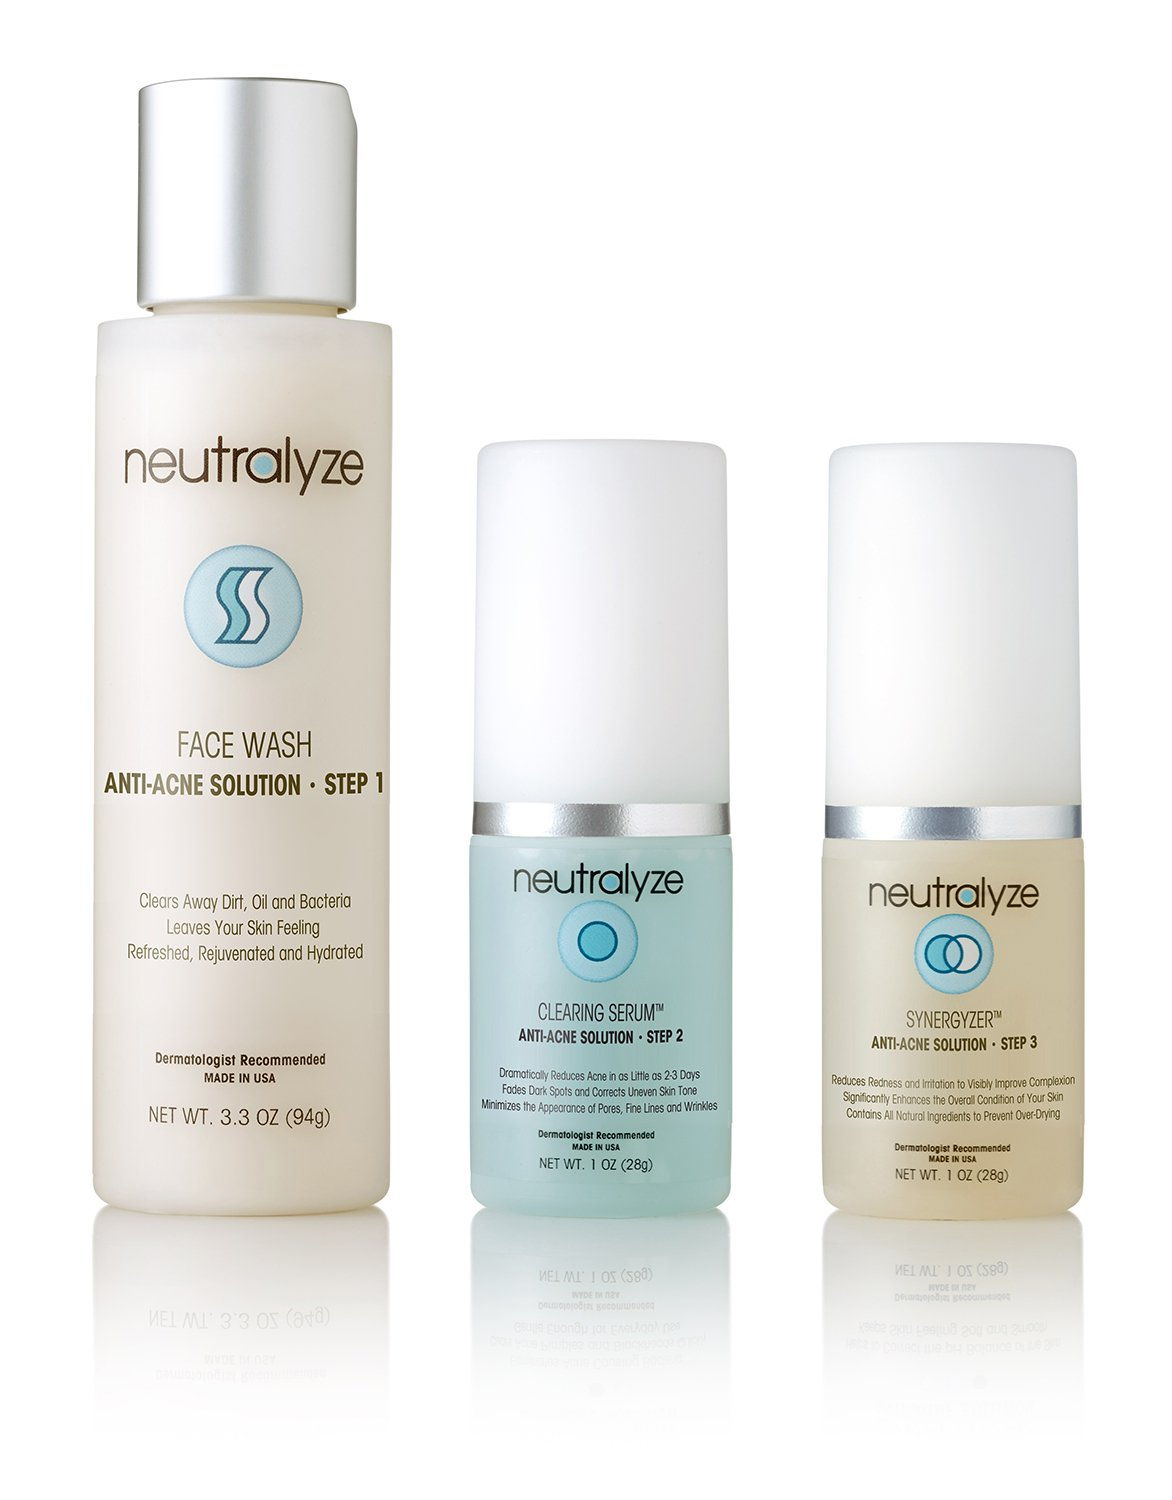 Neutralyze Moderate To Severe Acne Treatment Kit - Maximum Strength 3-Step Anti Acne Medication Includes Face Wash, Clearing Serum + Synergyzer